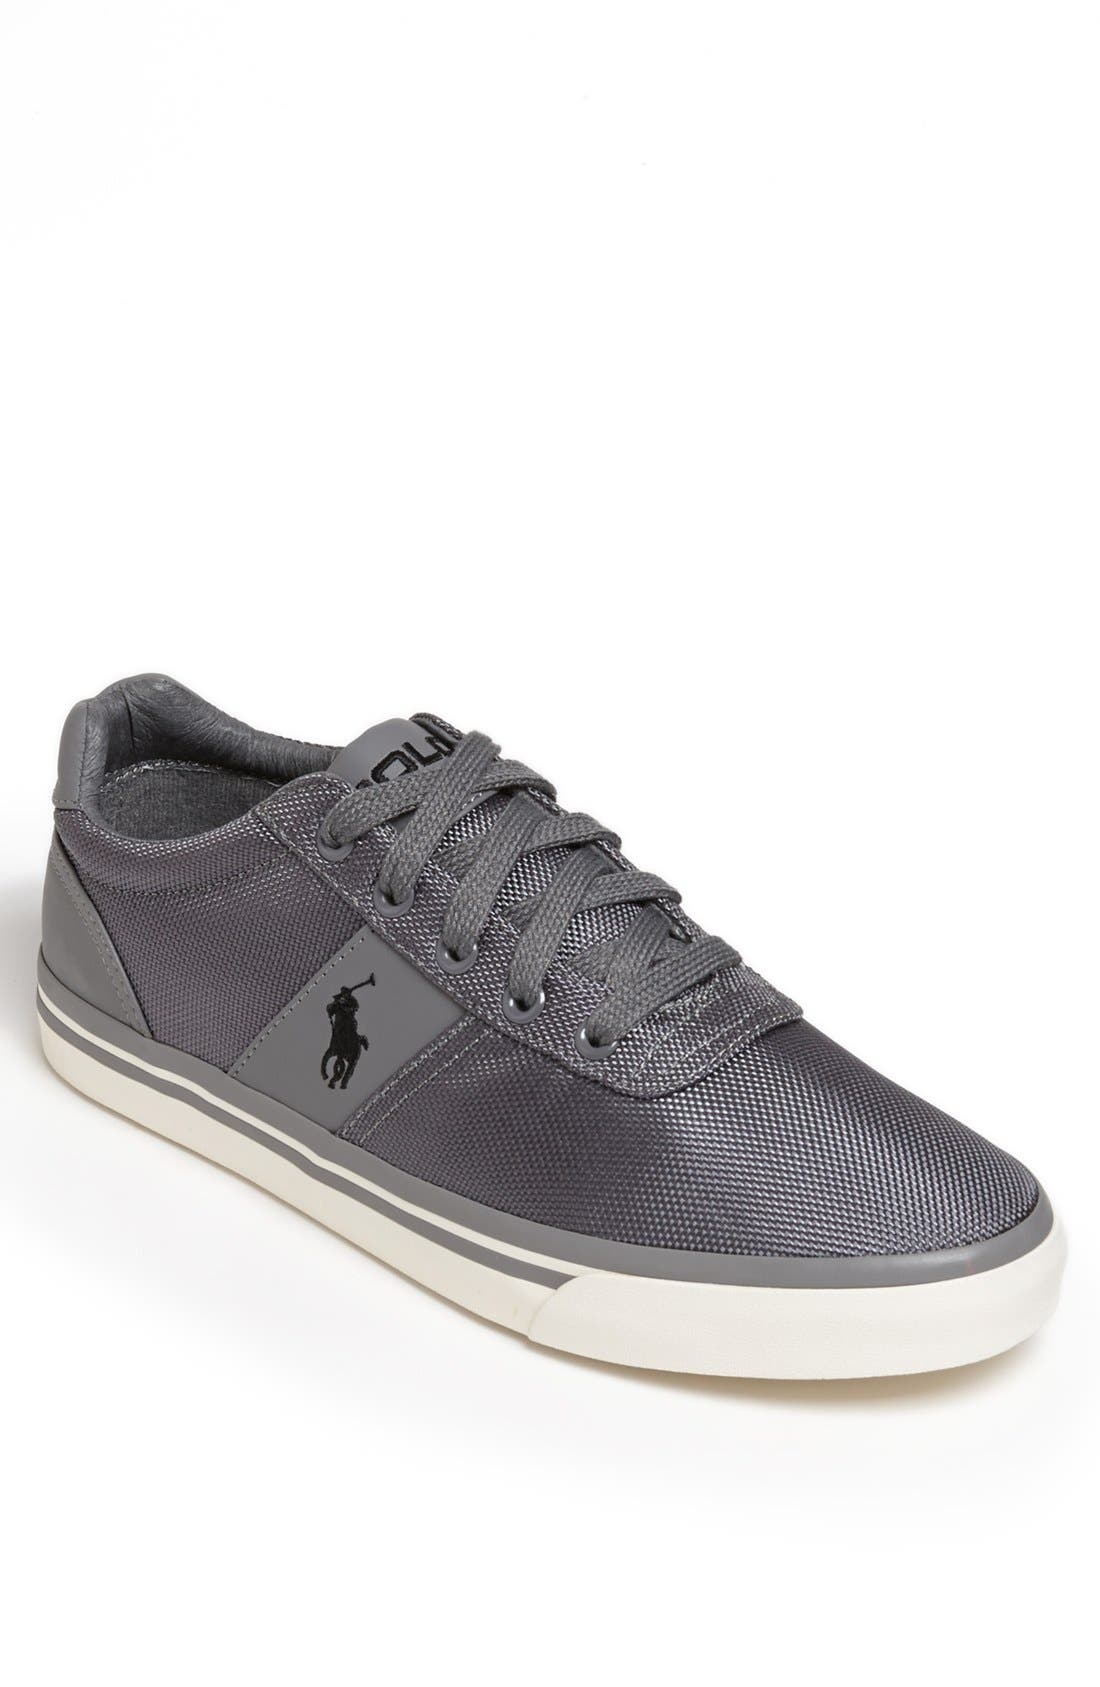 Alternate Image 1 Selected - Polo Ralph Lauren 'Hanford' Sneaker (Men)